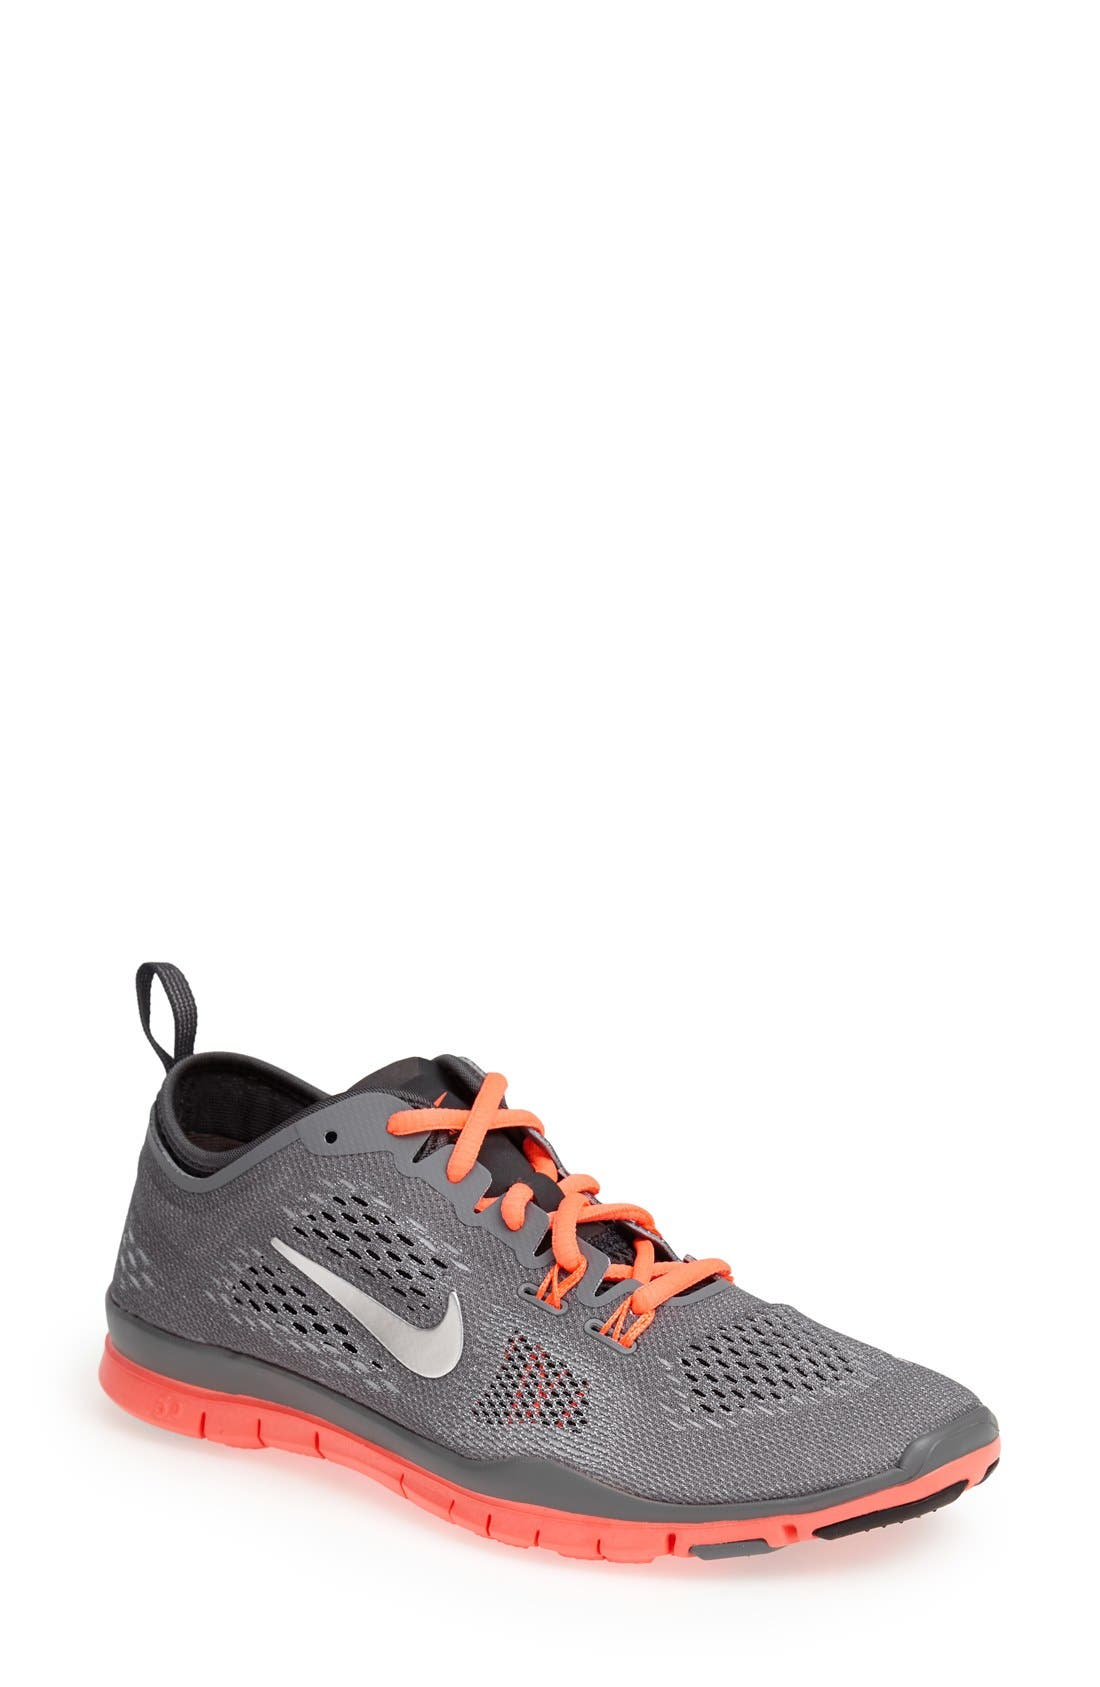 Alternate Image 1 Selected - Nike 'Free 5.0 TR Fit 4' Training Shoe (Women)